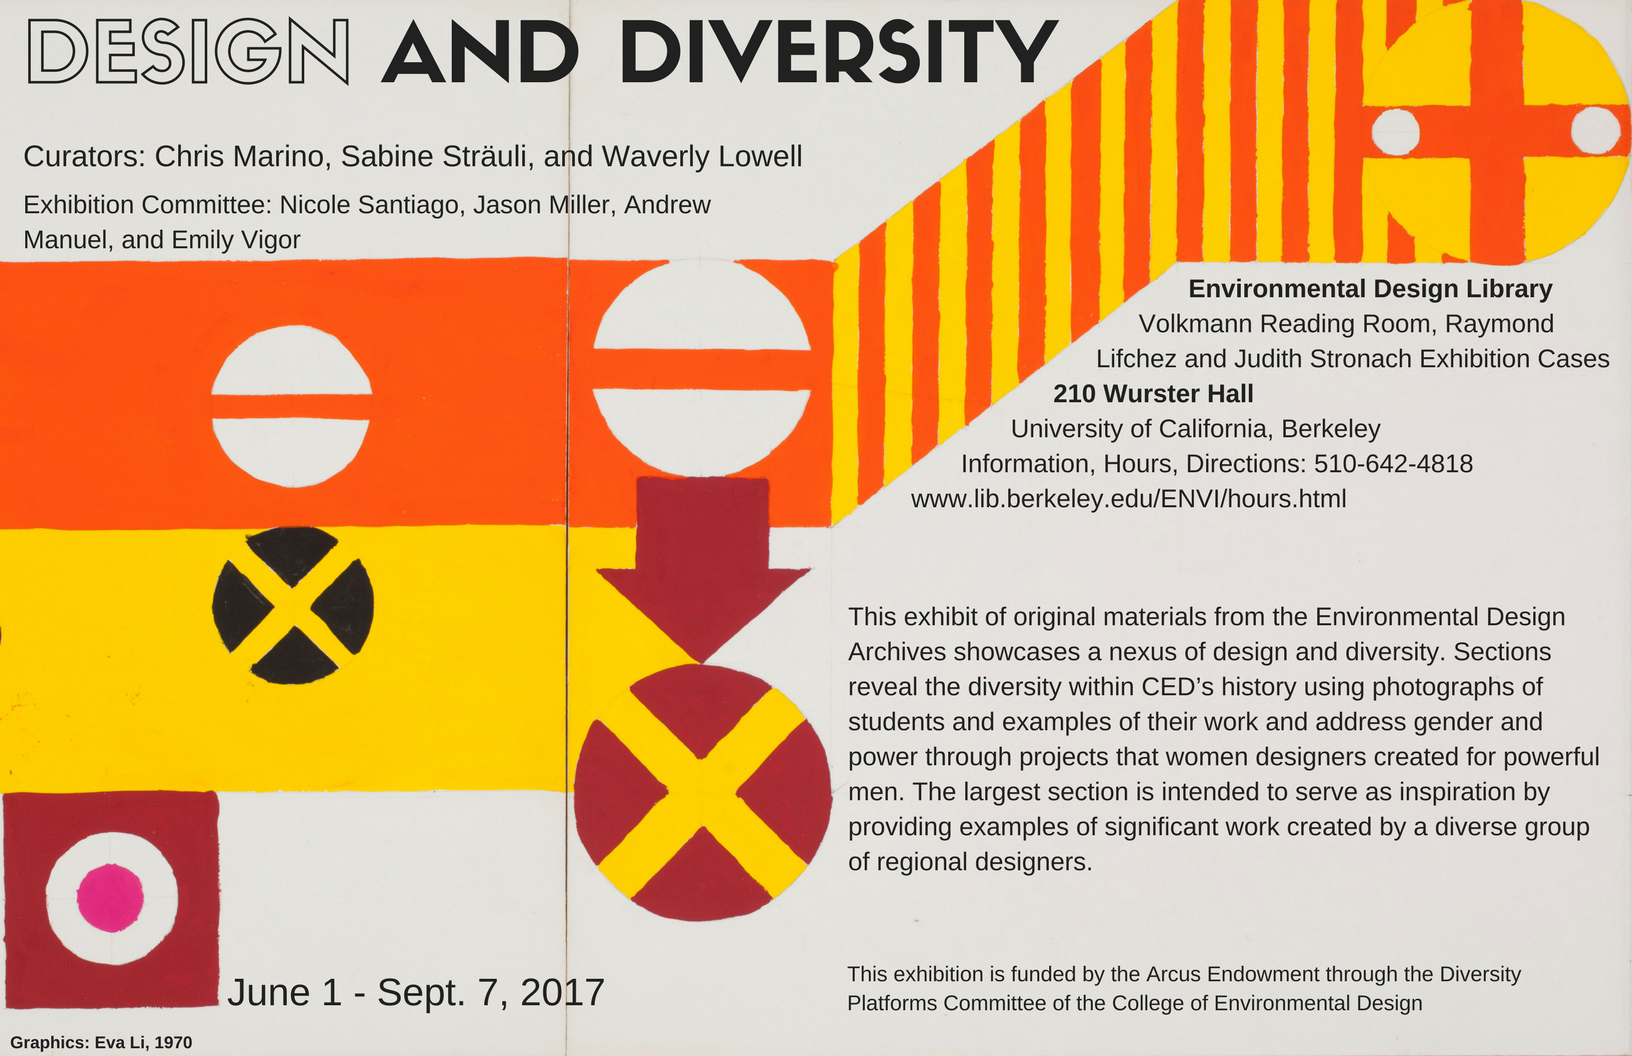 Design and Diversity Exhibition Poster